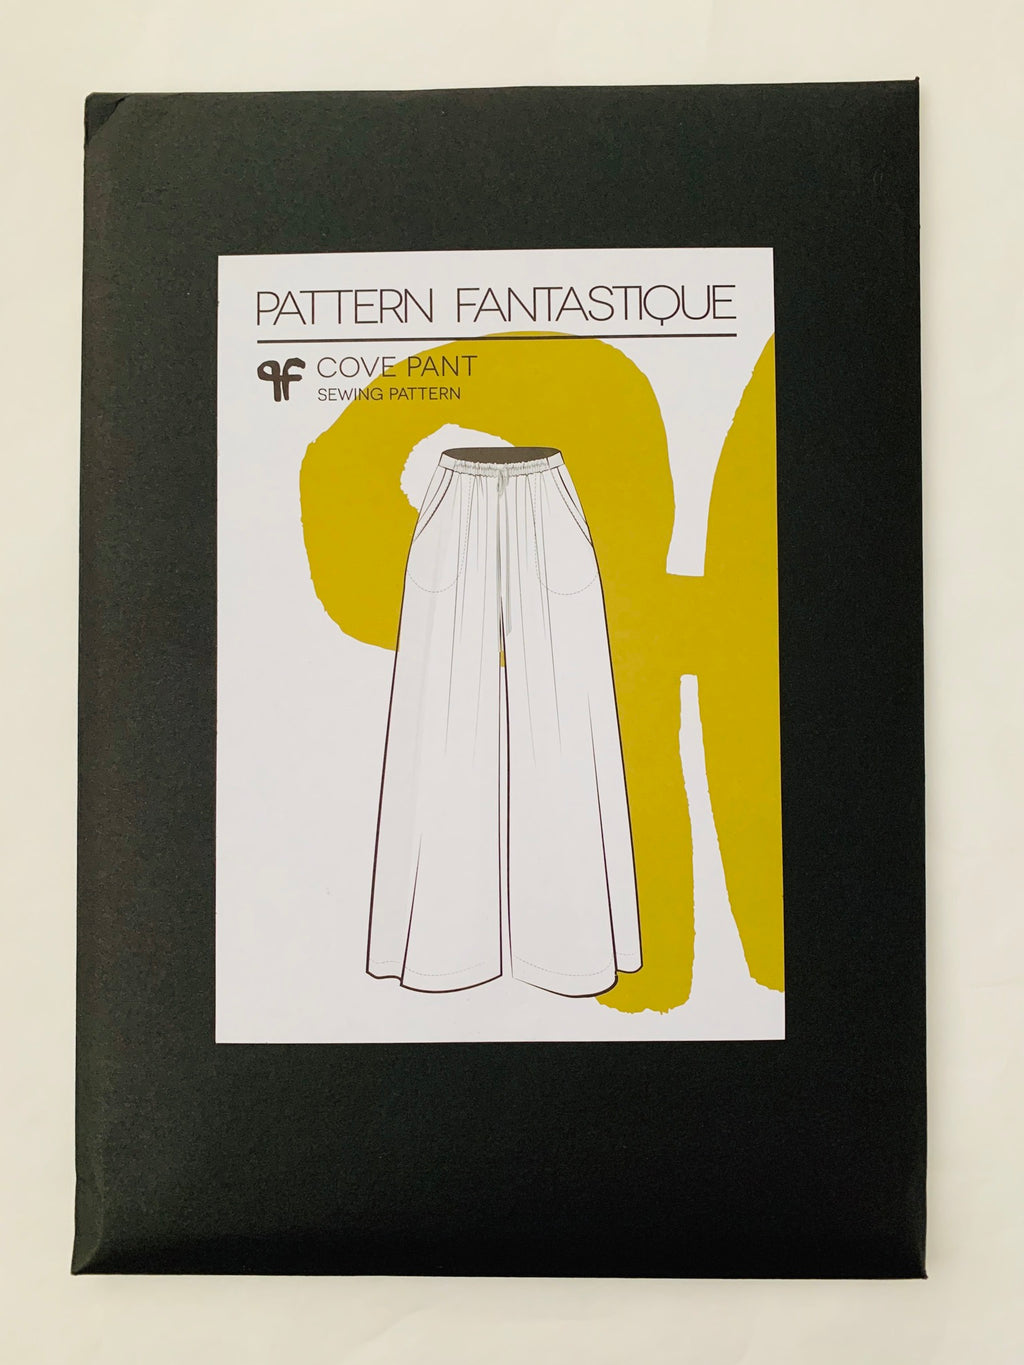 Pattern Fantastique Cove pant sewing pattern